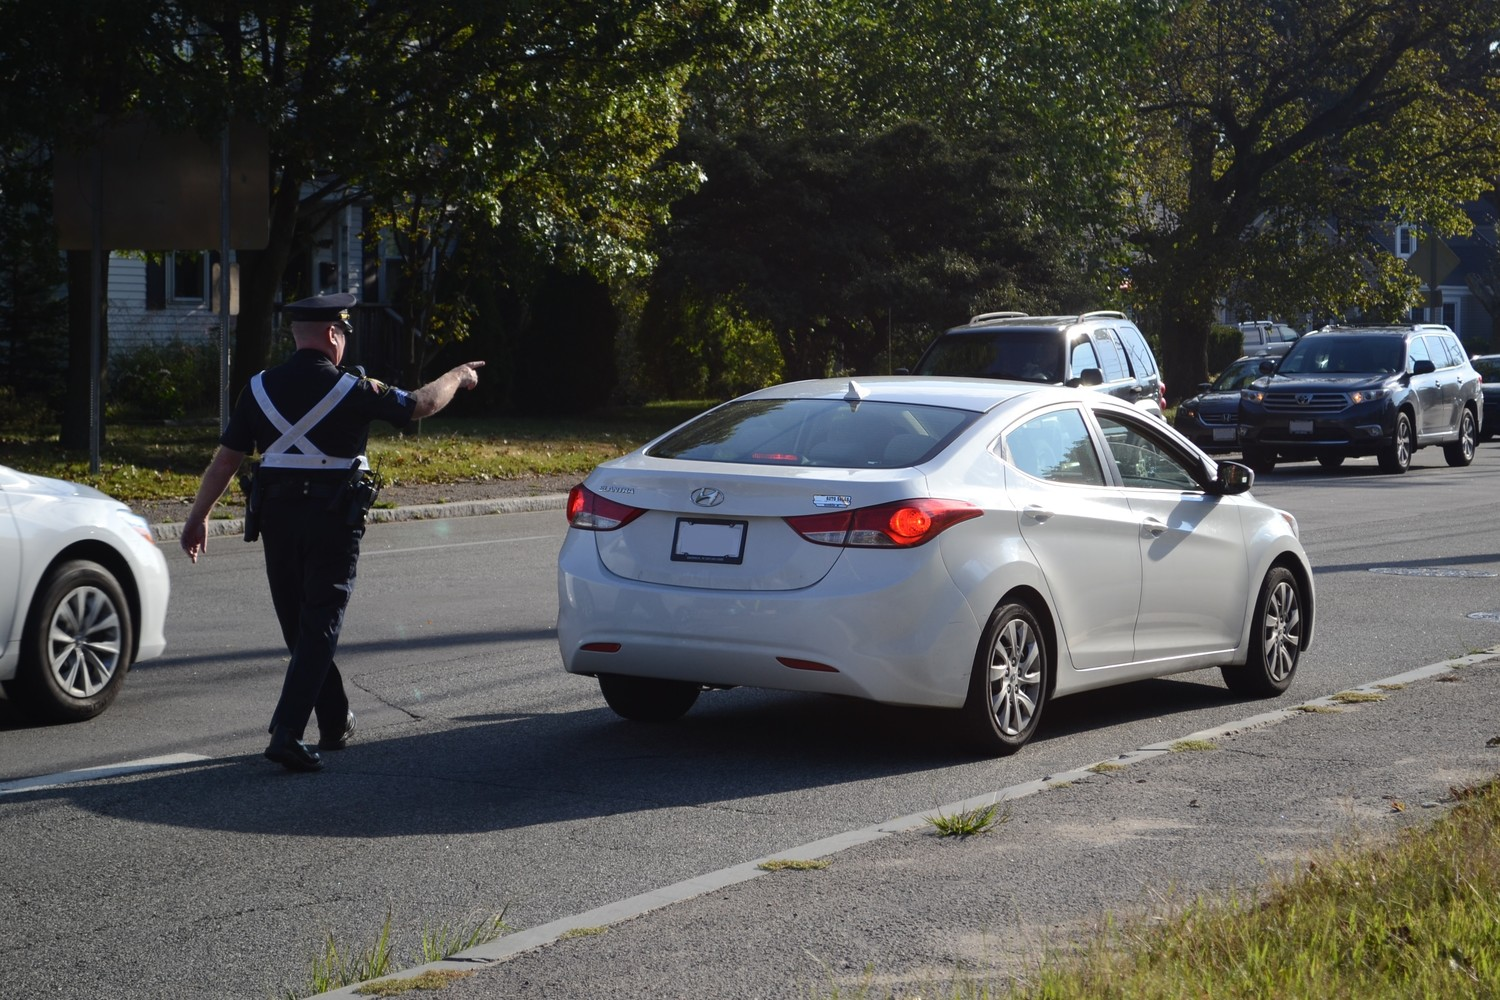 NOT SO FAST: Sgt. John Kelly, who leads the Warwick Police Traffic Unit, pulls over a motorist who failed to stop at the crosswalk in order to give an educational talk on proper safety statutes.